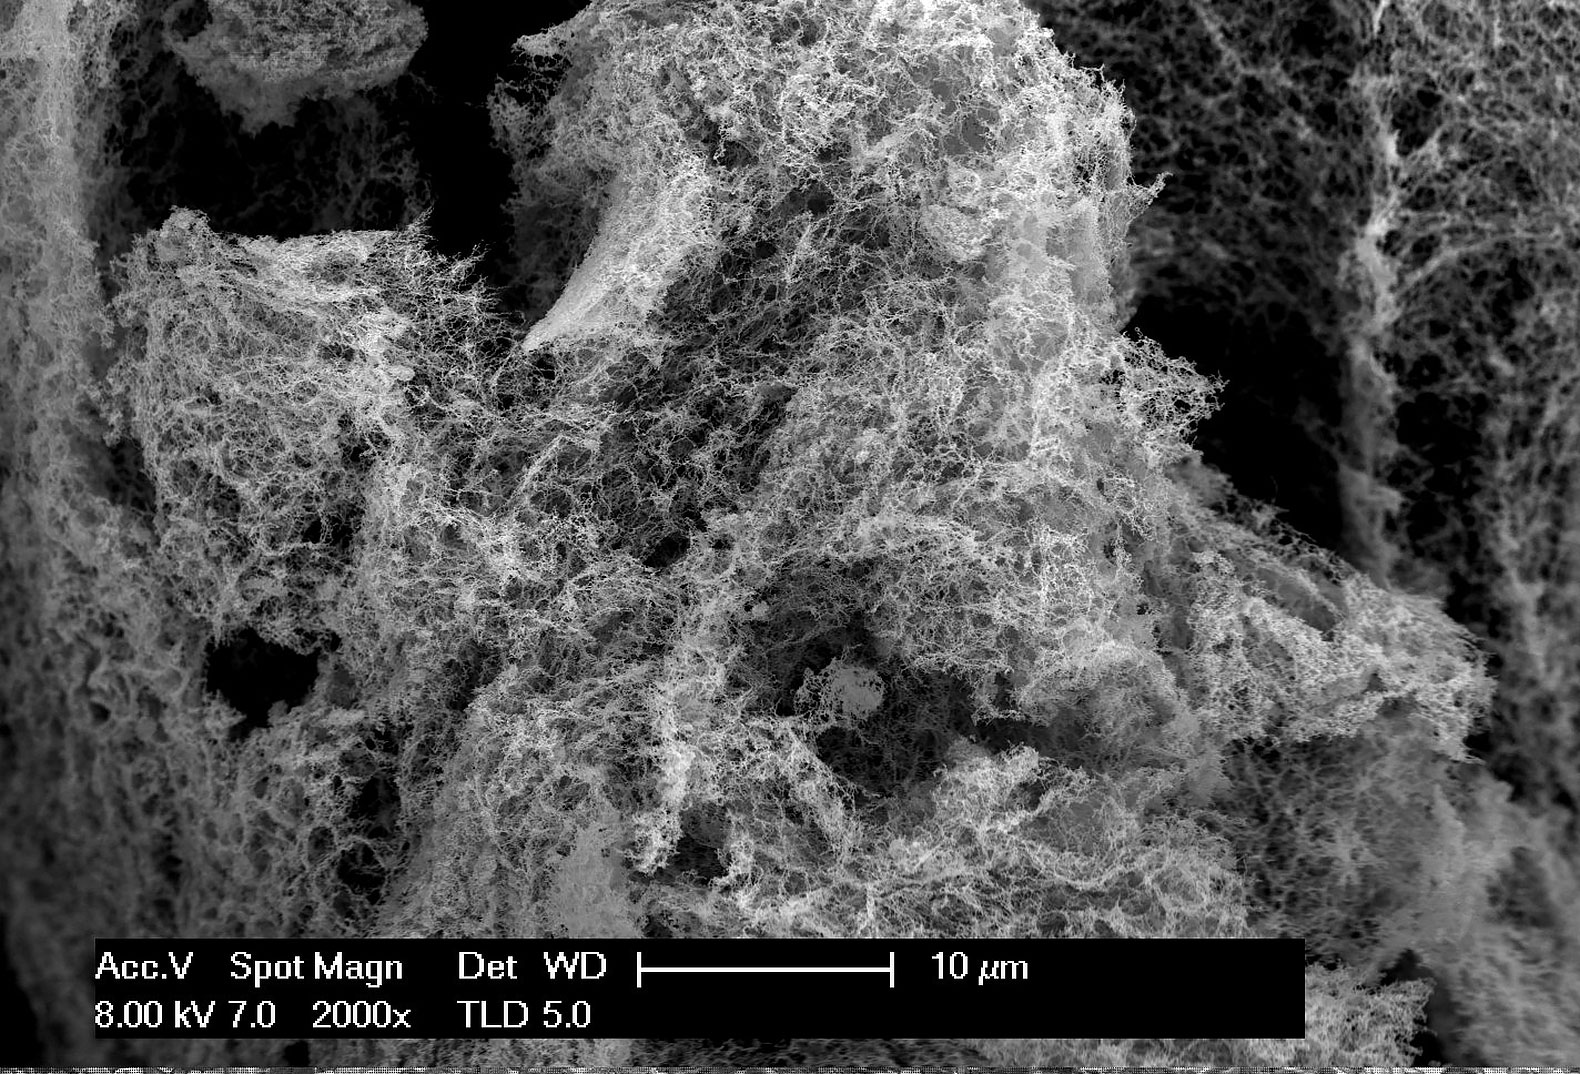 New nanofoam catalyst generates hydrogen from water quickly and cheaply